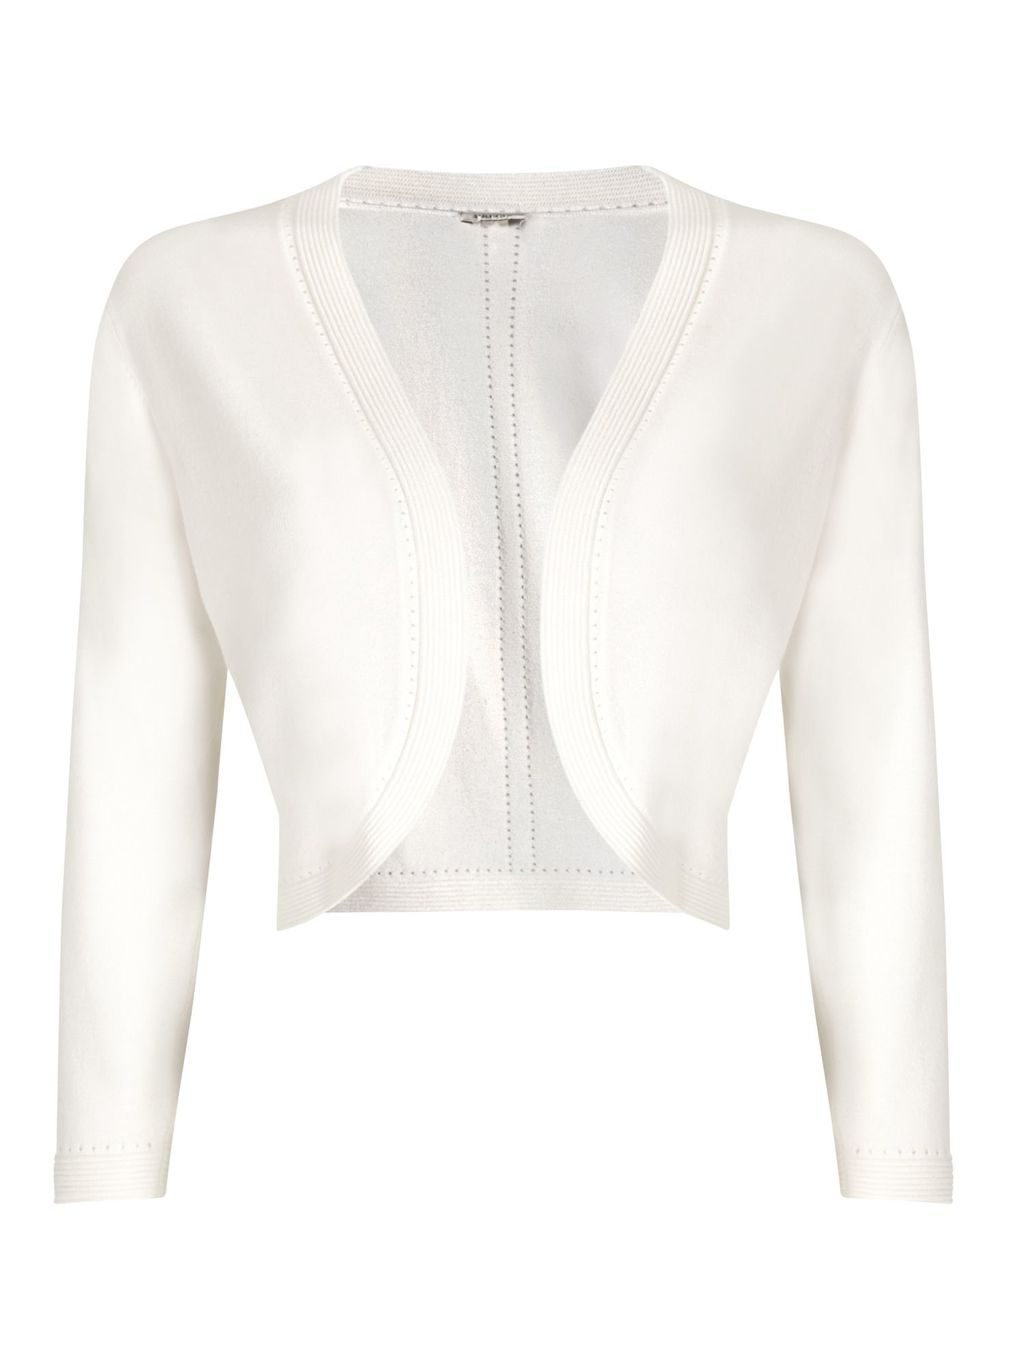 Ivory Shrug, Neutral - pattern: plain; style: bolero/shrug; length: cropped; neckline: collarless open; predominant colour: ivory/cream; occasions: occasion; fit: standard fit; sleeve length: long sleeve; sleeve style: standard; texture group: knits/crochet; pattern type: knitted - fine stitch; fibres: viscose/rayon - mix; season: s/s 2016; wardrobe: event